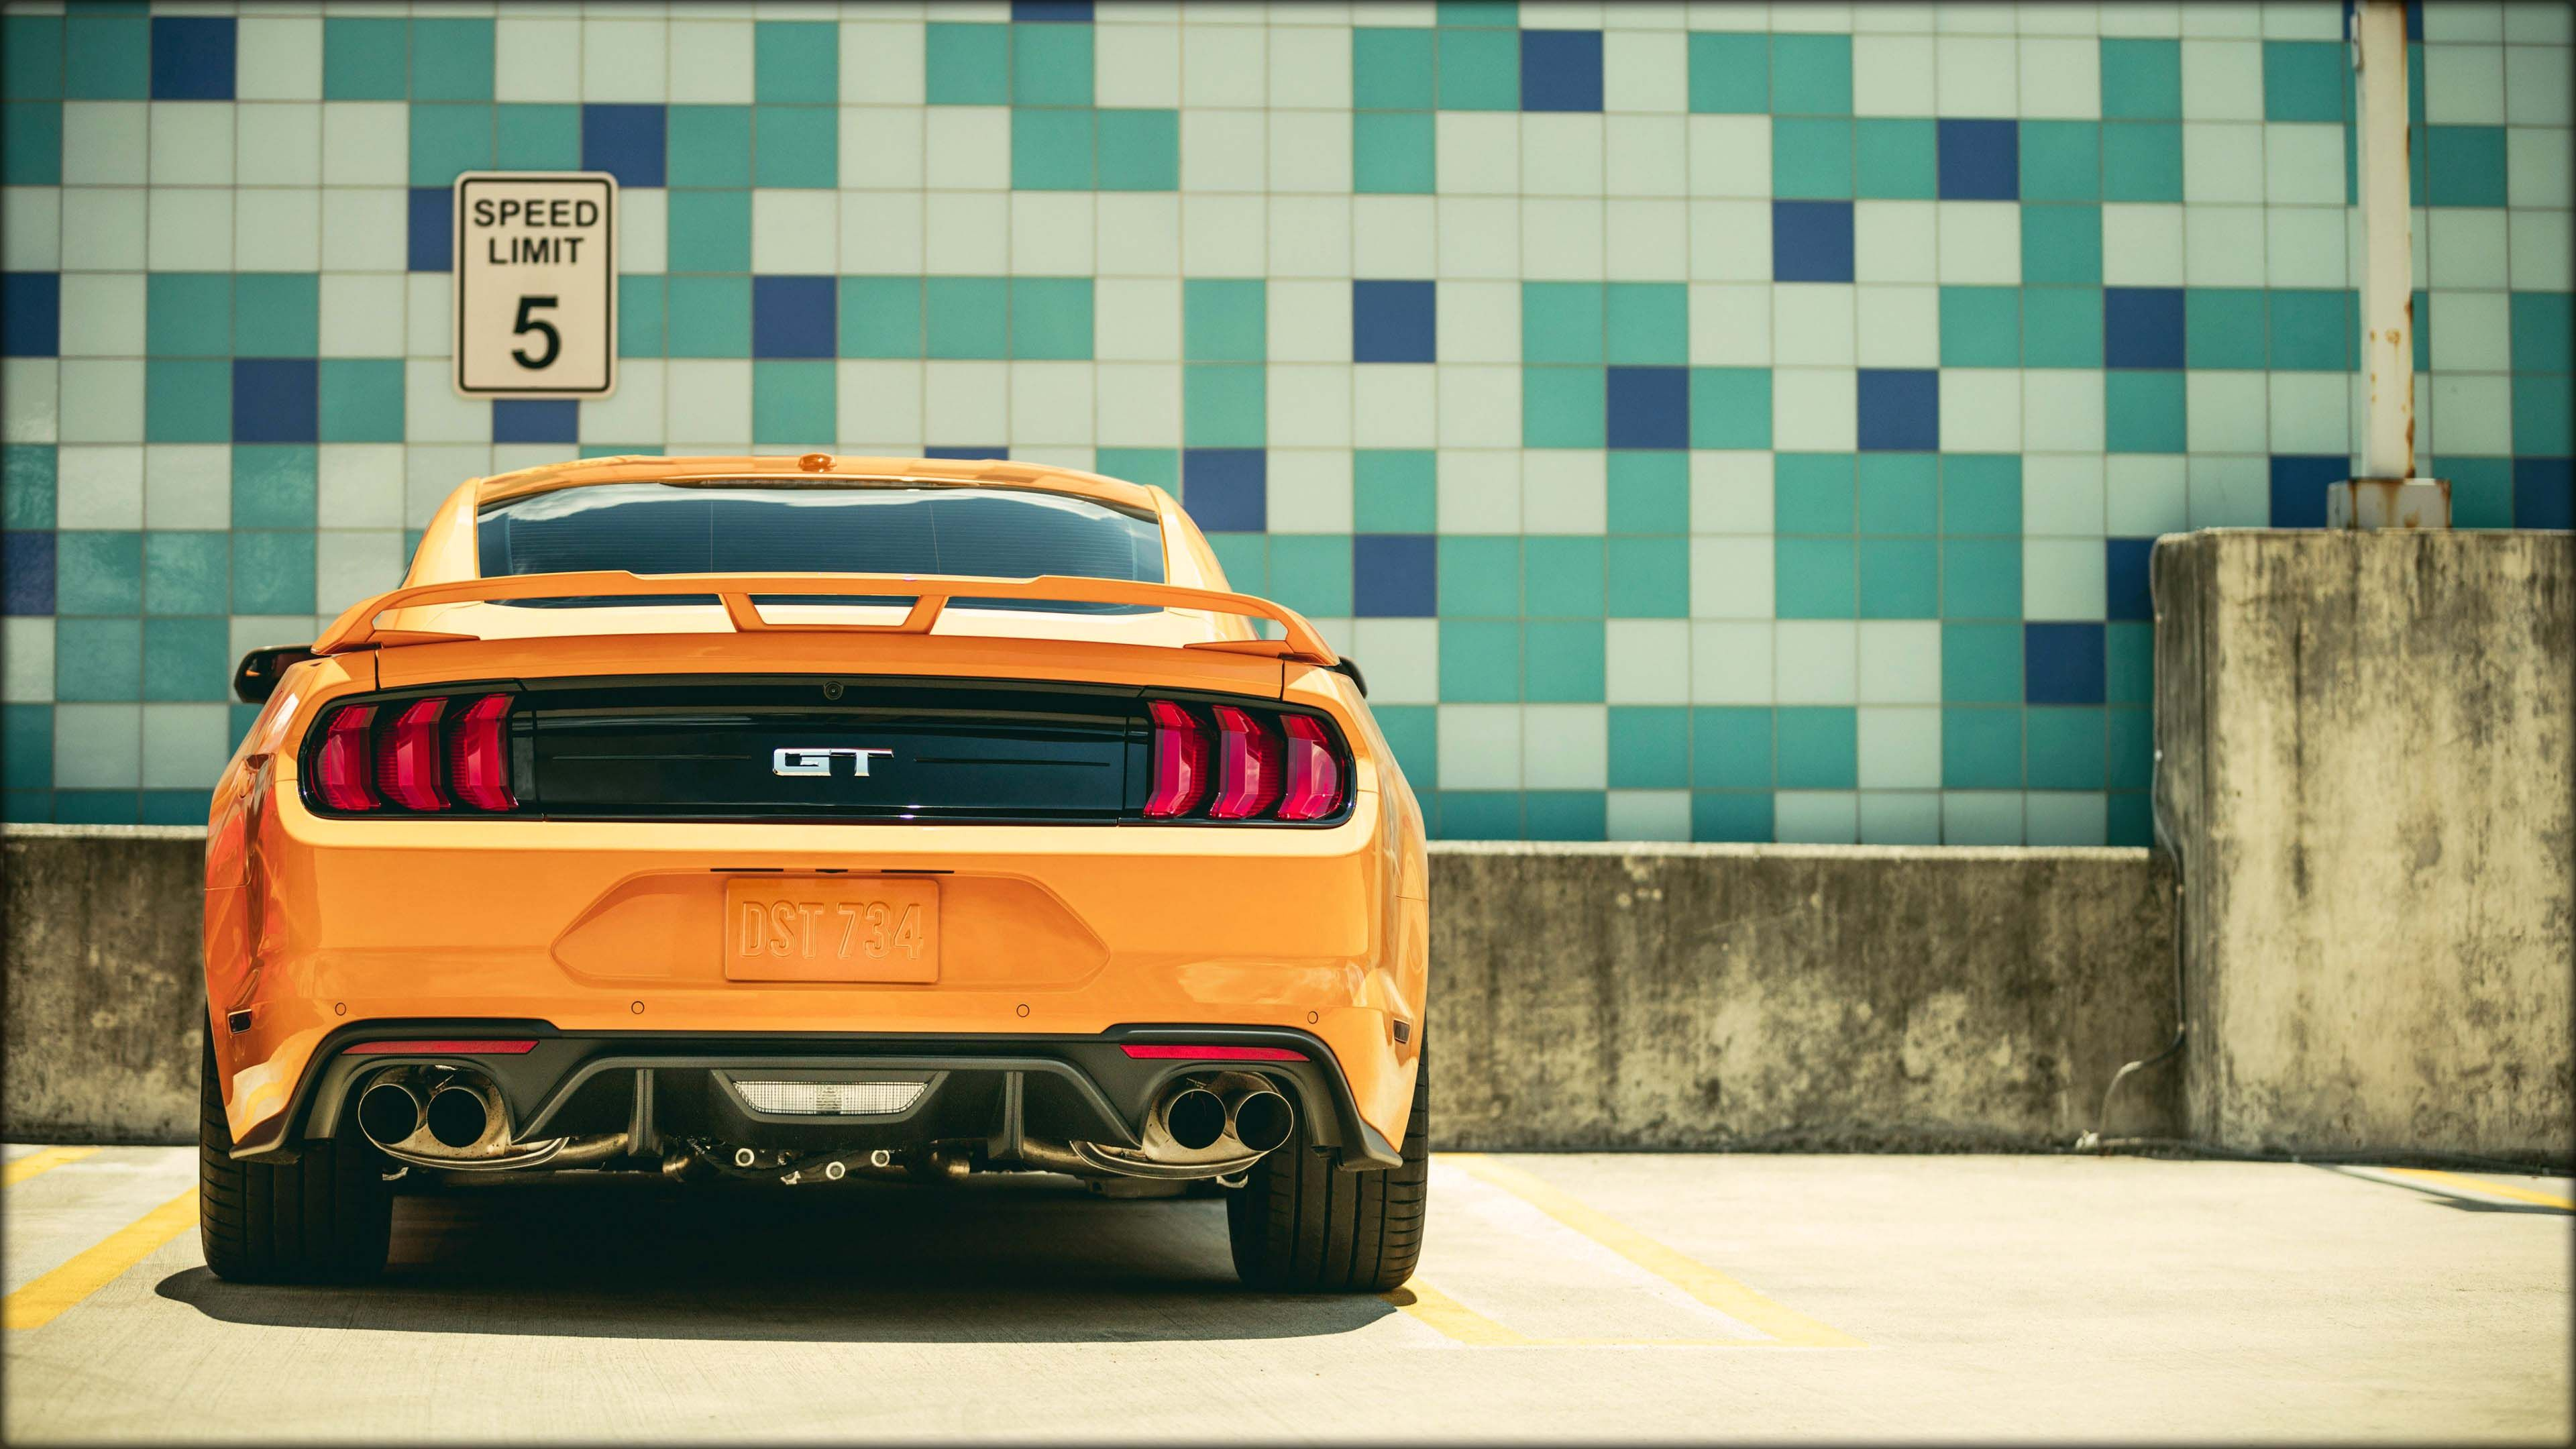 Image For Design Exterior 2018 Ford Mustang Gt Fastback Sports Car 4k 3 Ford Mustang Gt Ford Mustang Ford Mustang Car